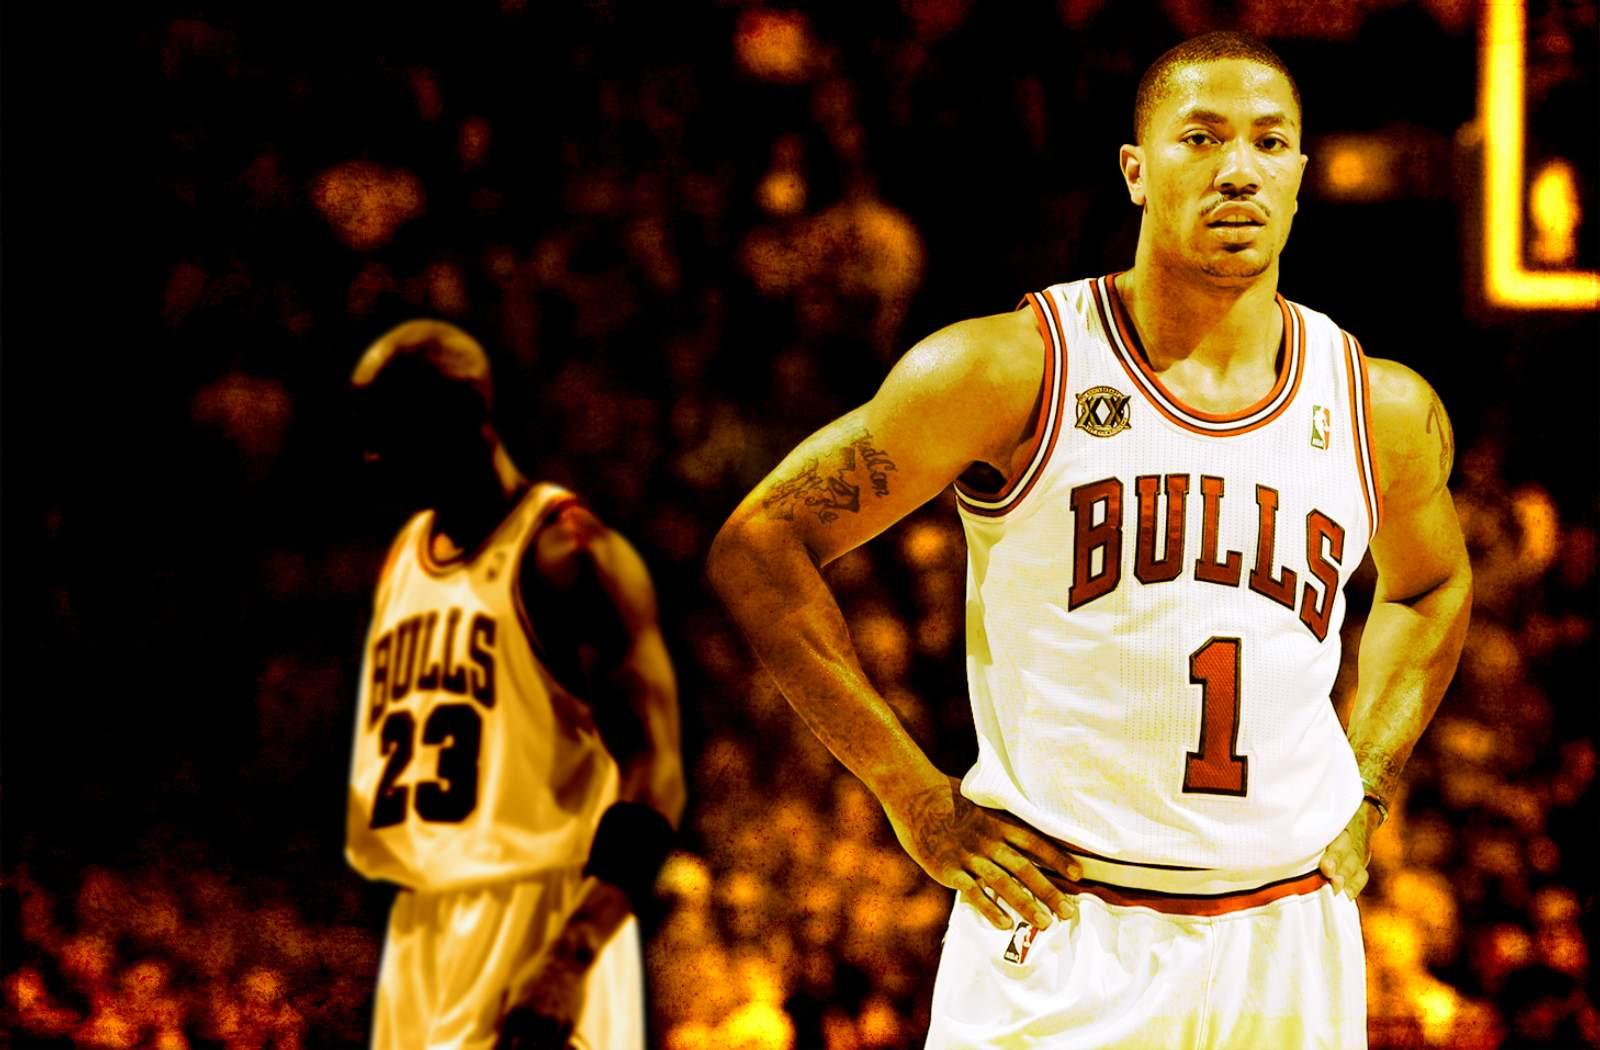 Derrick Rose basketball wallpapers NBA Wallpapers Basket Ball 1600x1050